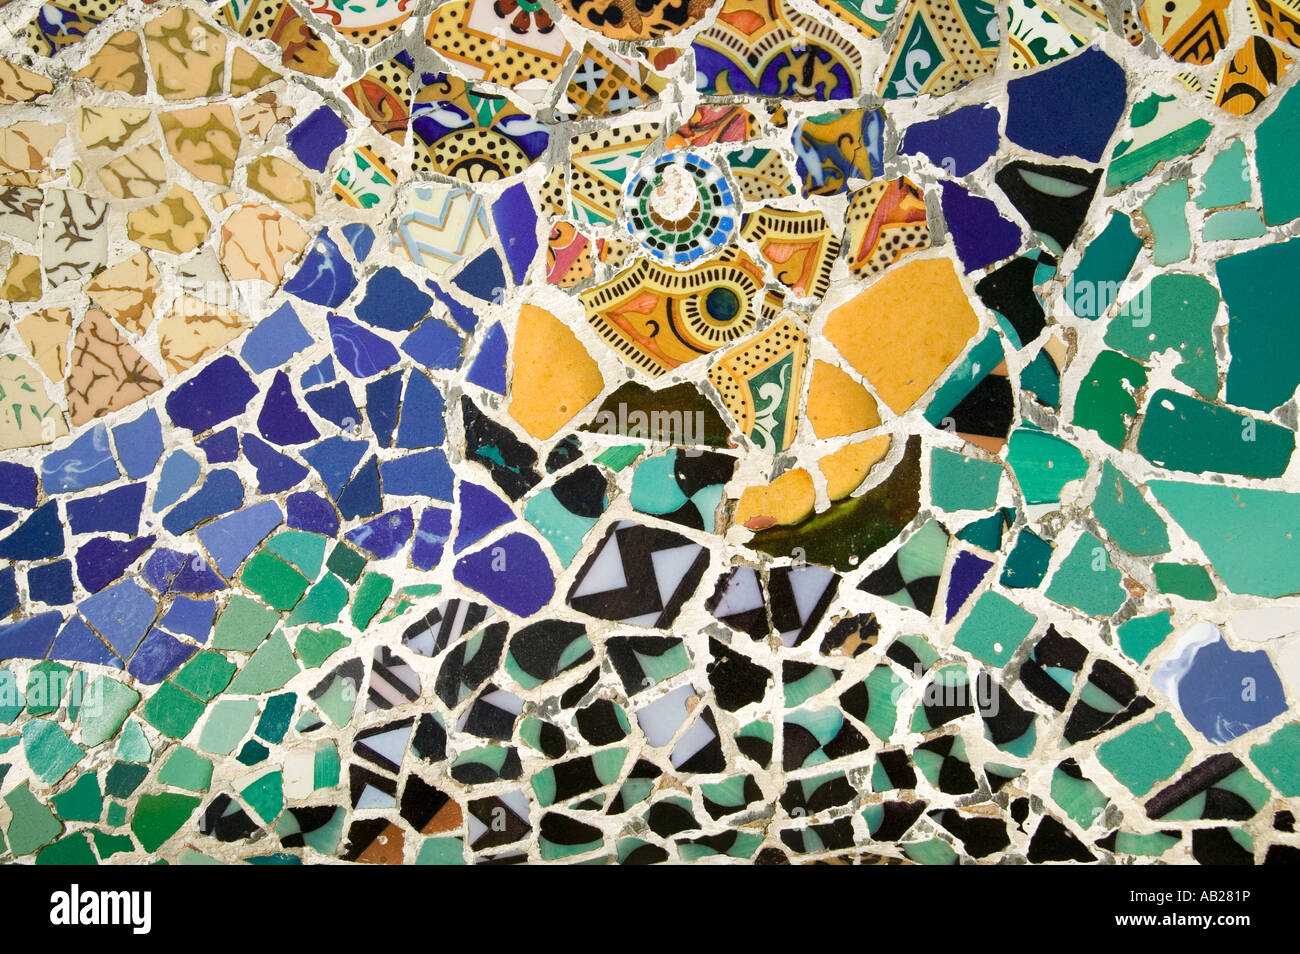 Closeup of mosaic of colored ceramic tile by antoni gaudi at his closeup of mosaic of colored ceramic tile by antoni gaudi at his parc guell barcelona spain doublecrazyfo Choice Image